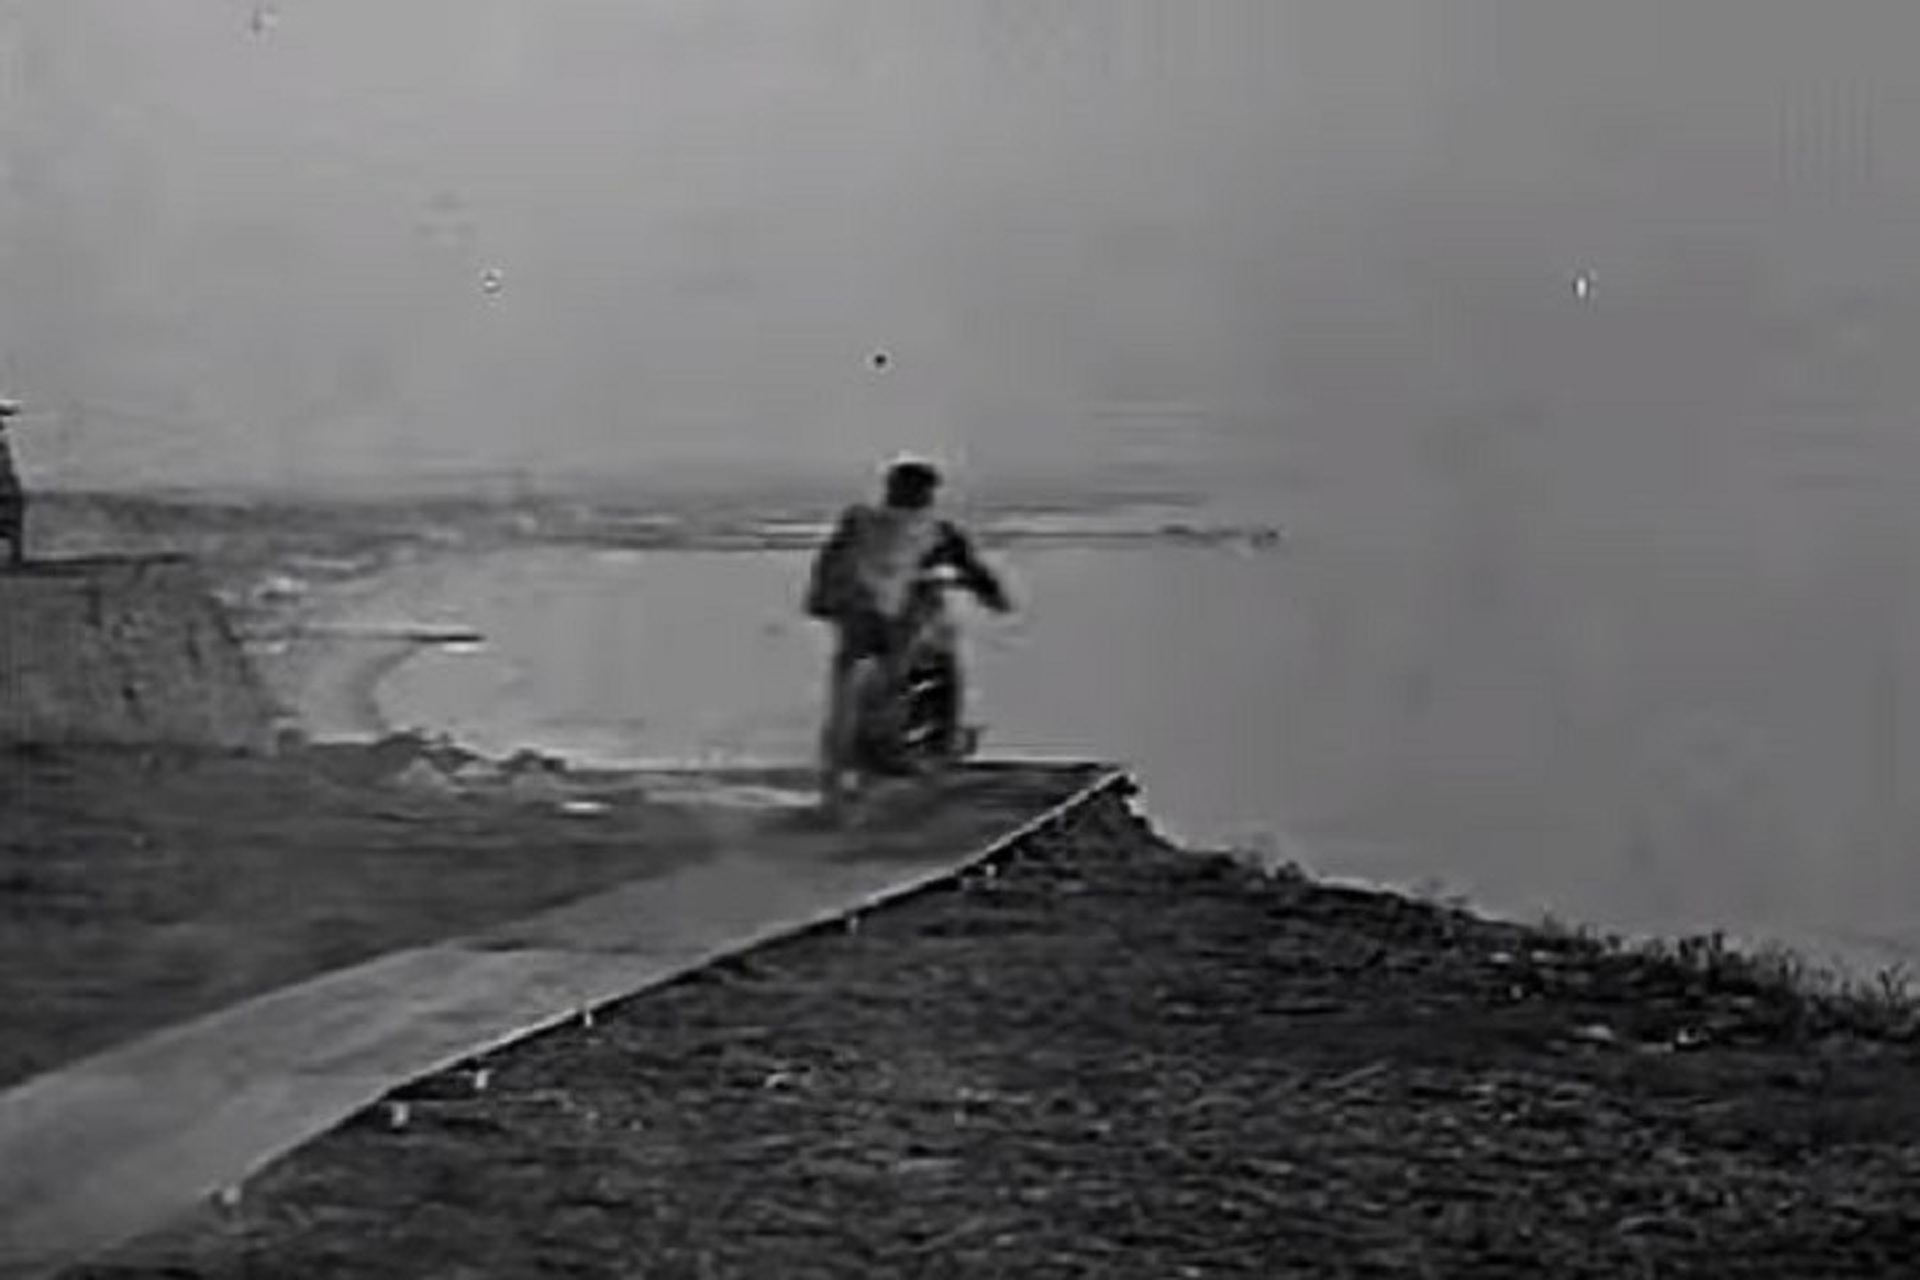 Watch the Failed First Motorcycle Parachute Jump From 1926